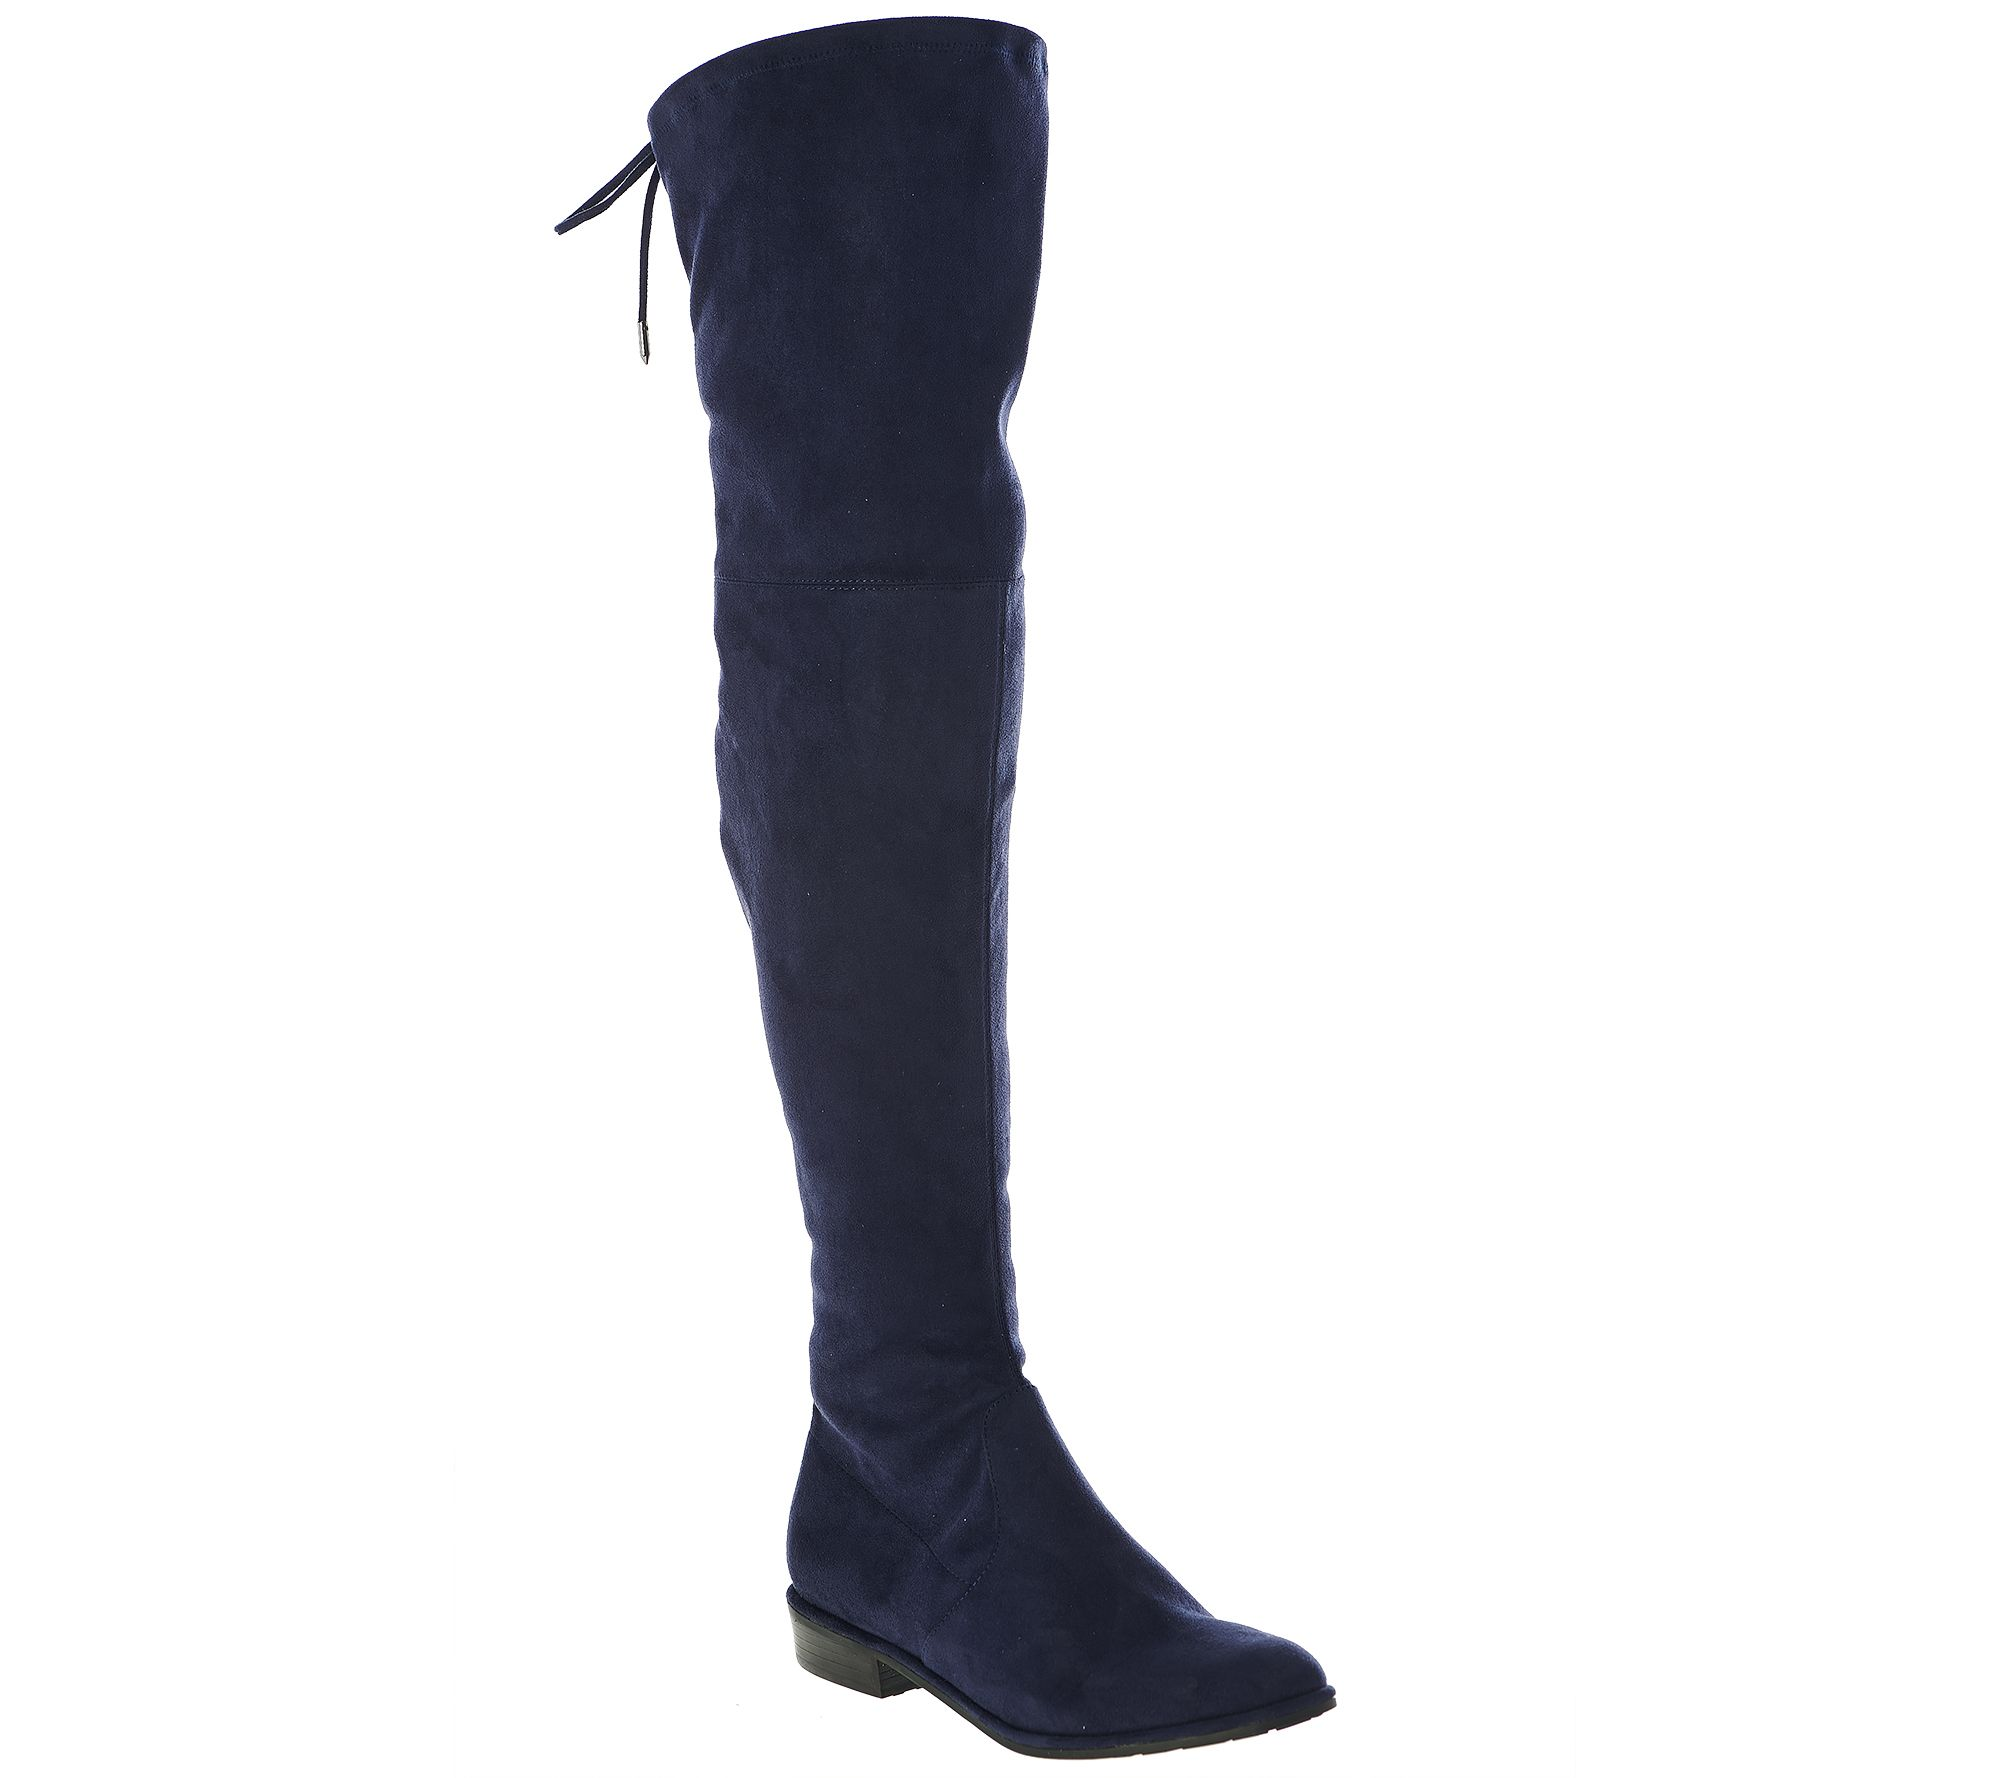 a96664f6290 Marc Fisher Faux-Suede Over the Knee Boots - Humor - Page 1 — QVC.com